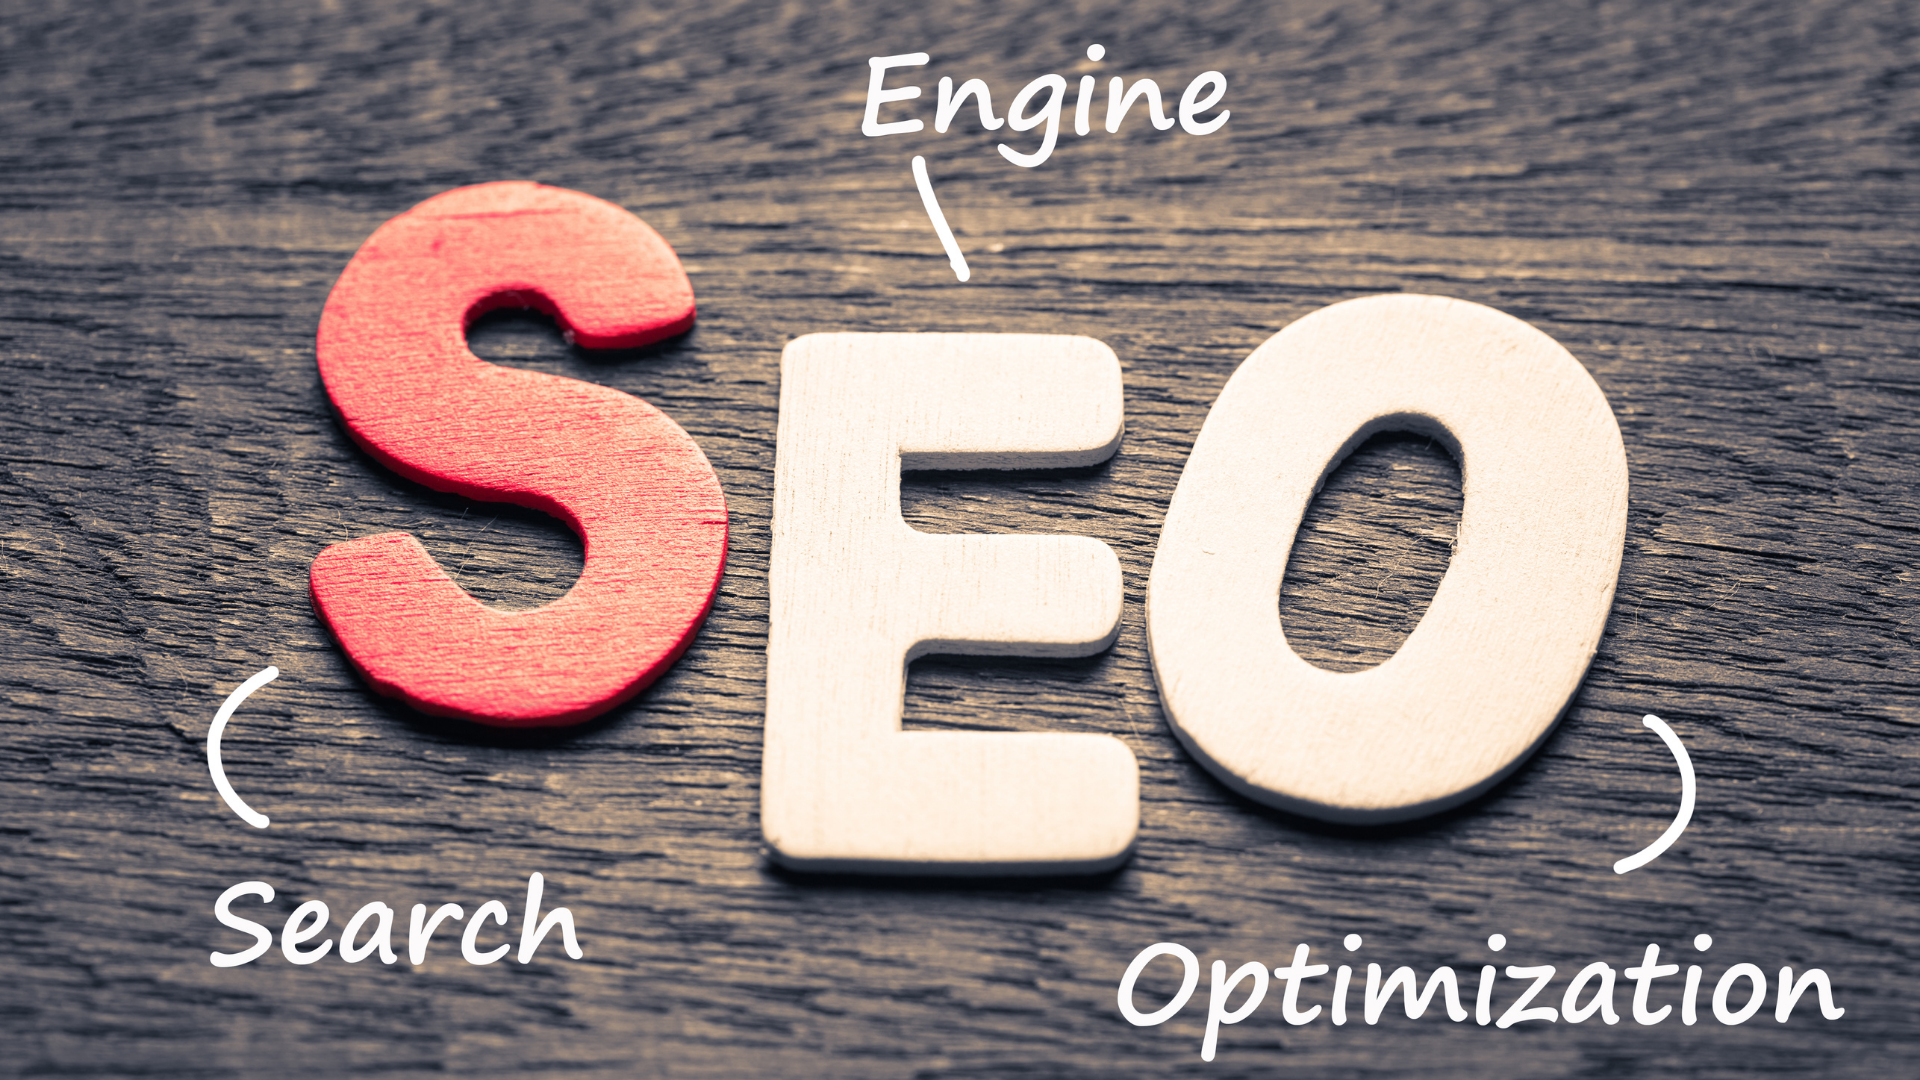 Over the last nine months I have consistently tried to understand and implement SEO strategies. One of the best tools for that was Yoast SEO plugin. SEO Content Belfast - SEO writer NI - Freelance Copywriter Belfast